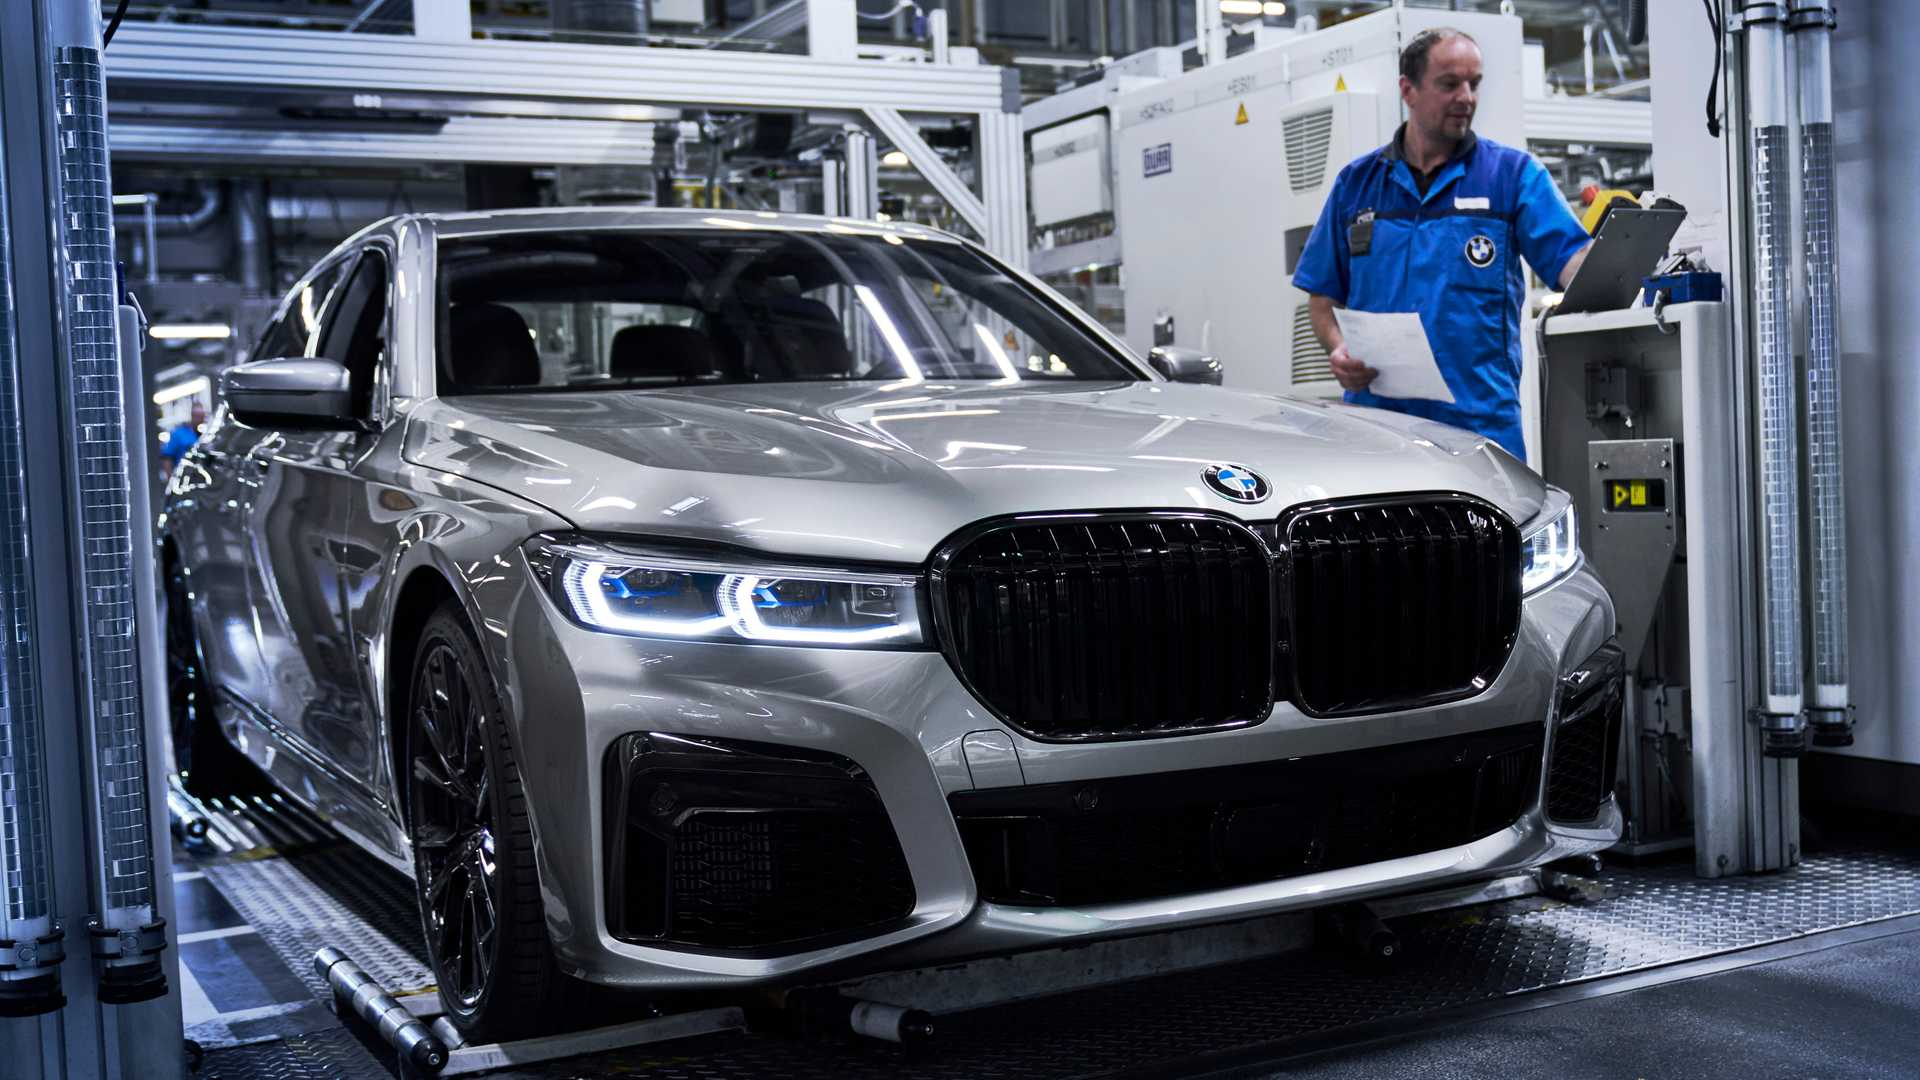 Bmw Reiterates The V12 Doesn T Have A Life Beyond Current Gen